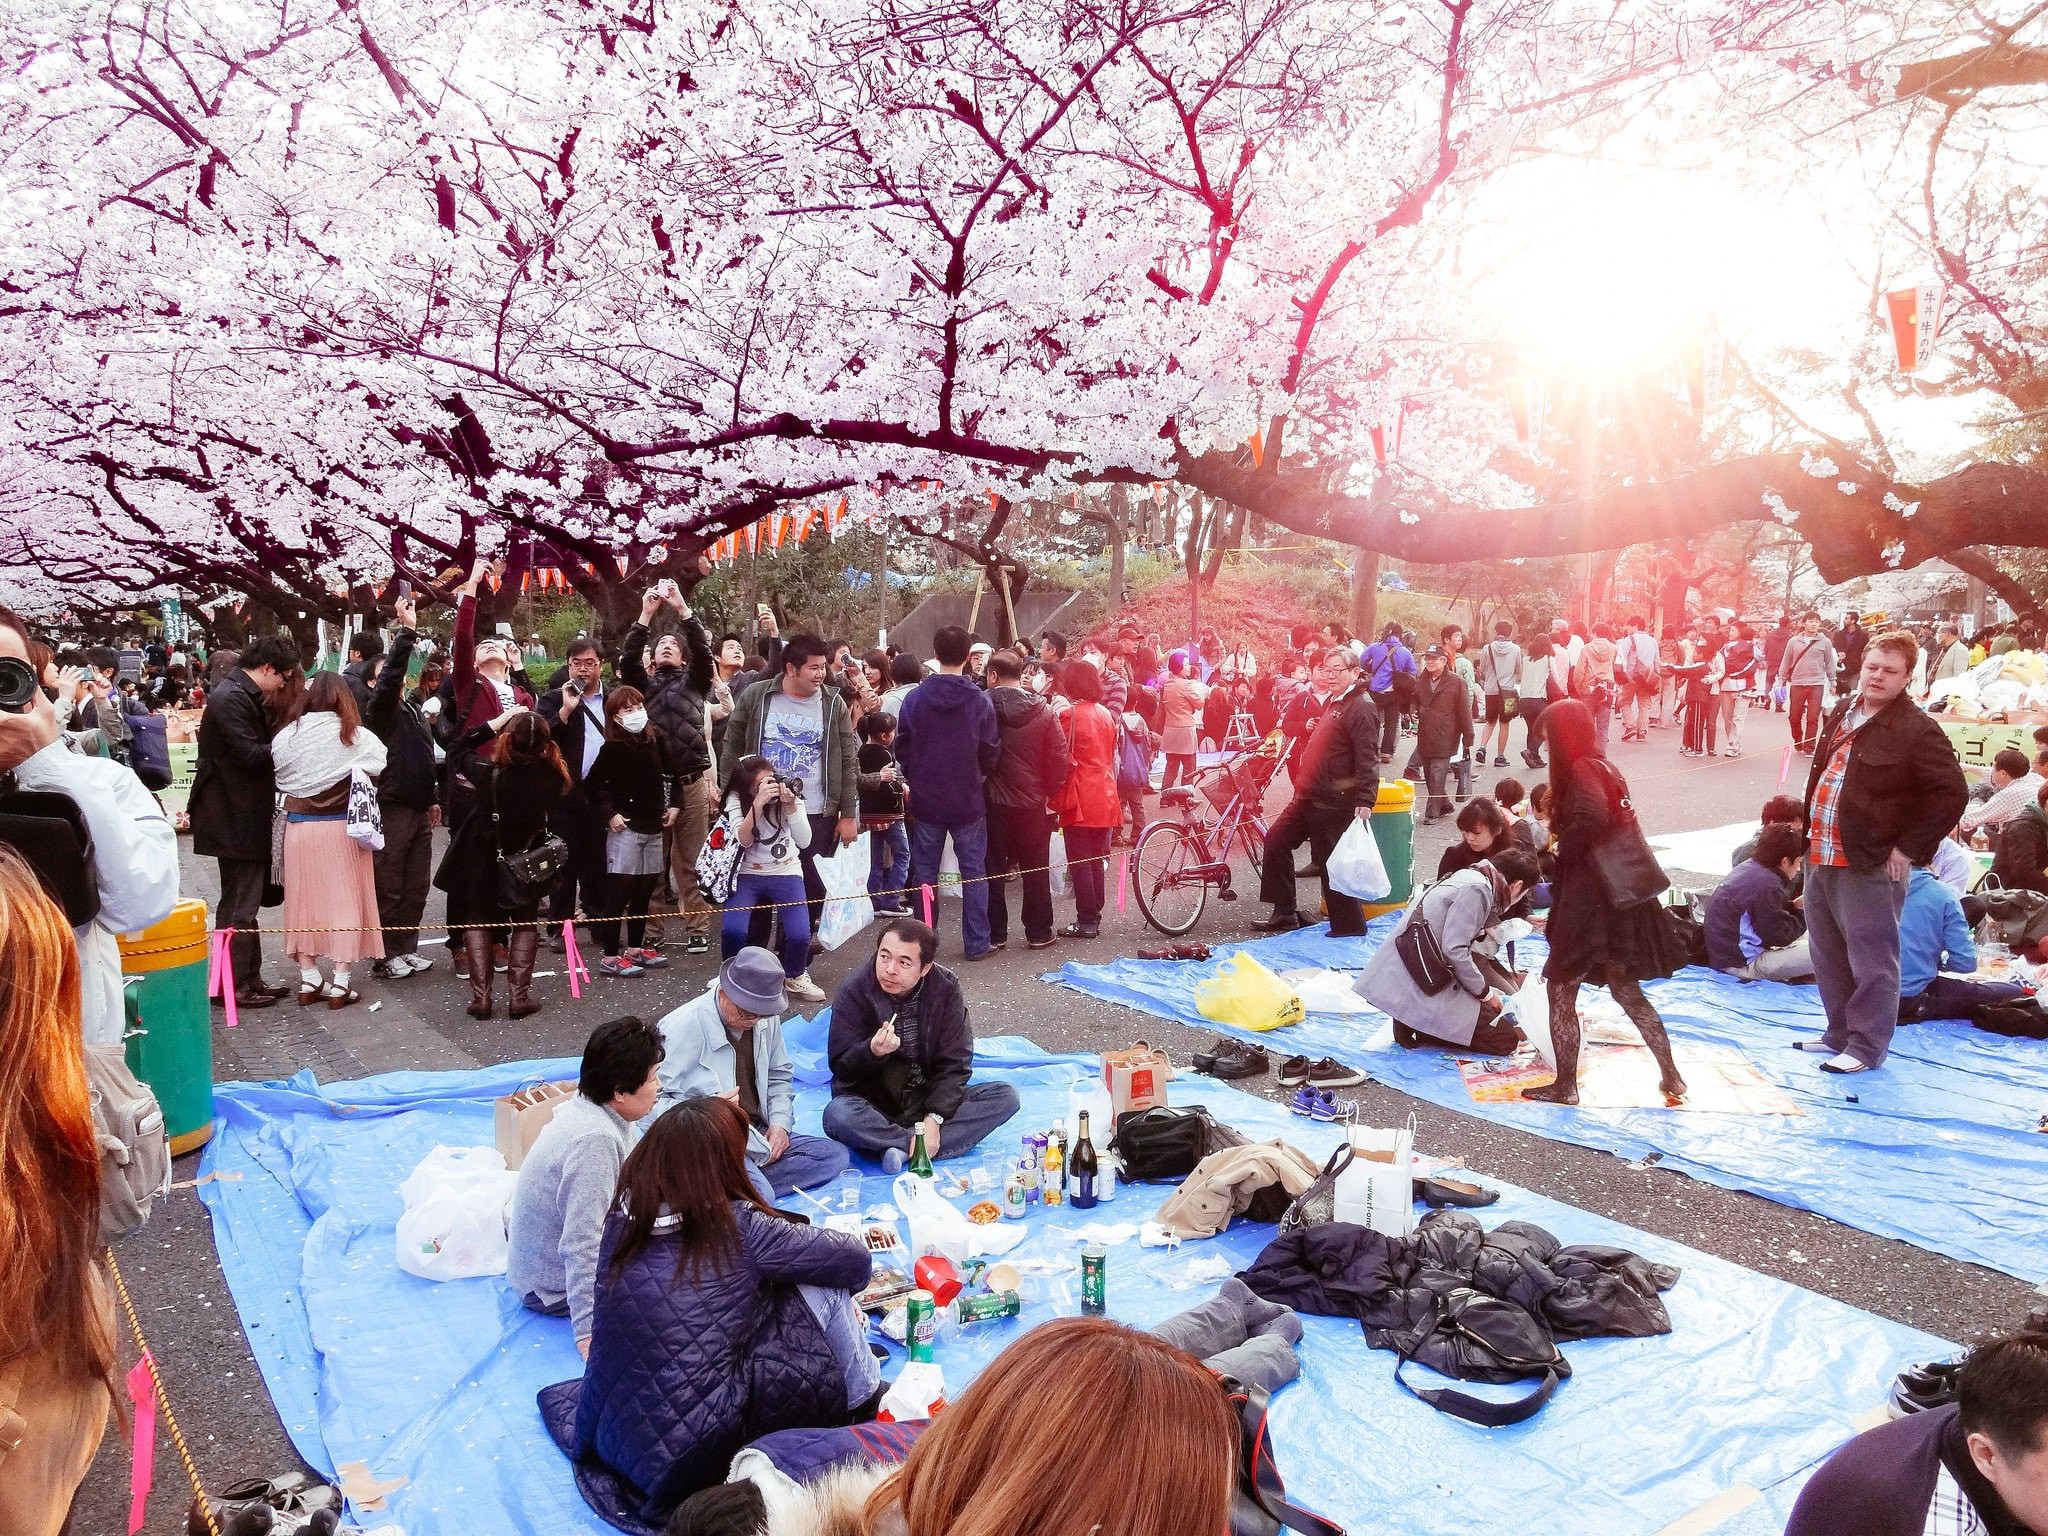 Hanami at Ueno Park 2013 | © Dick Thomas Johnson / Flickr